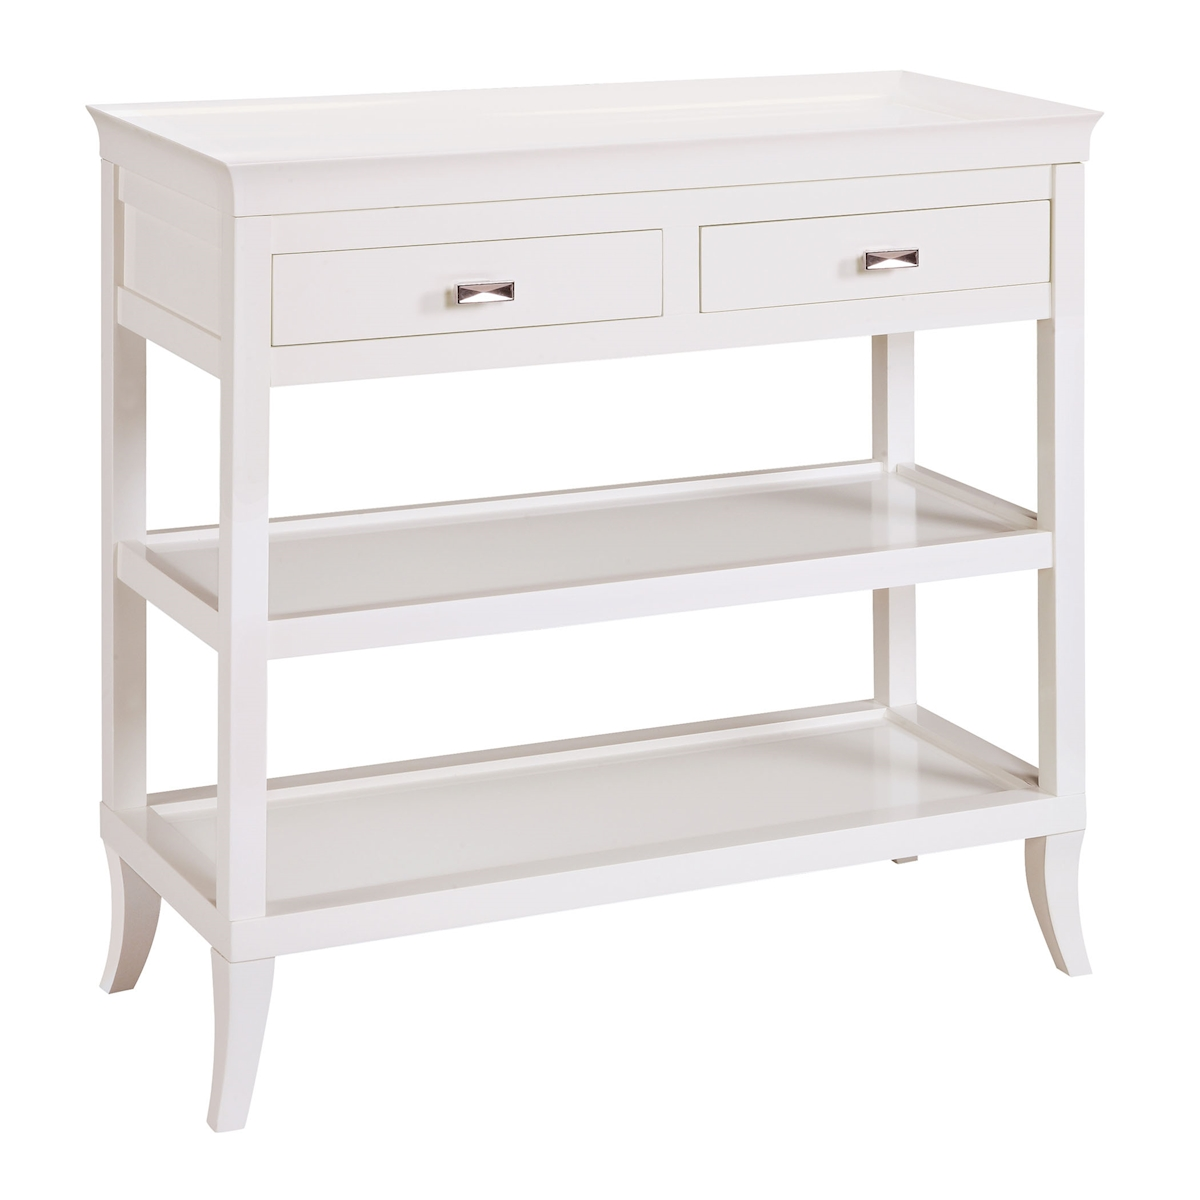 Tamara Hall Table in White 6042716 | ELK Home